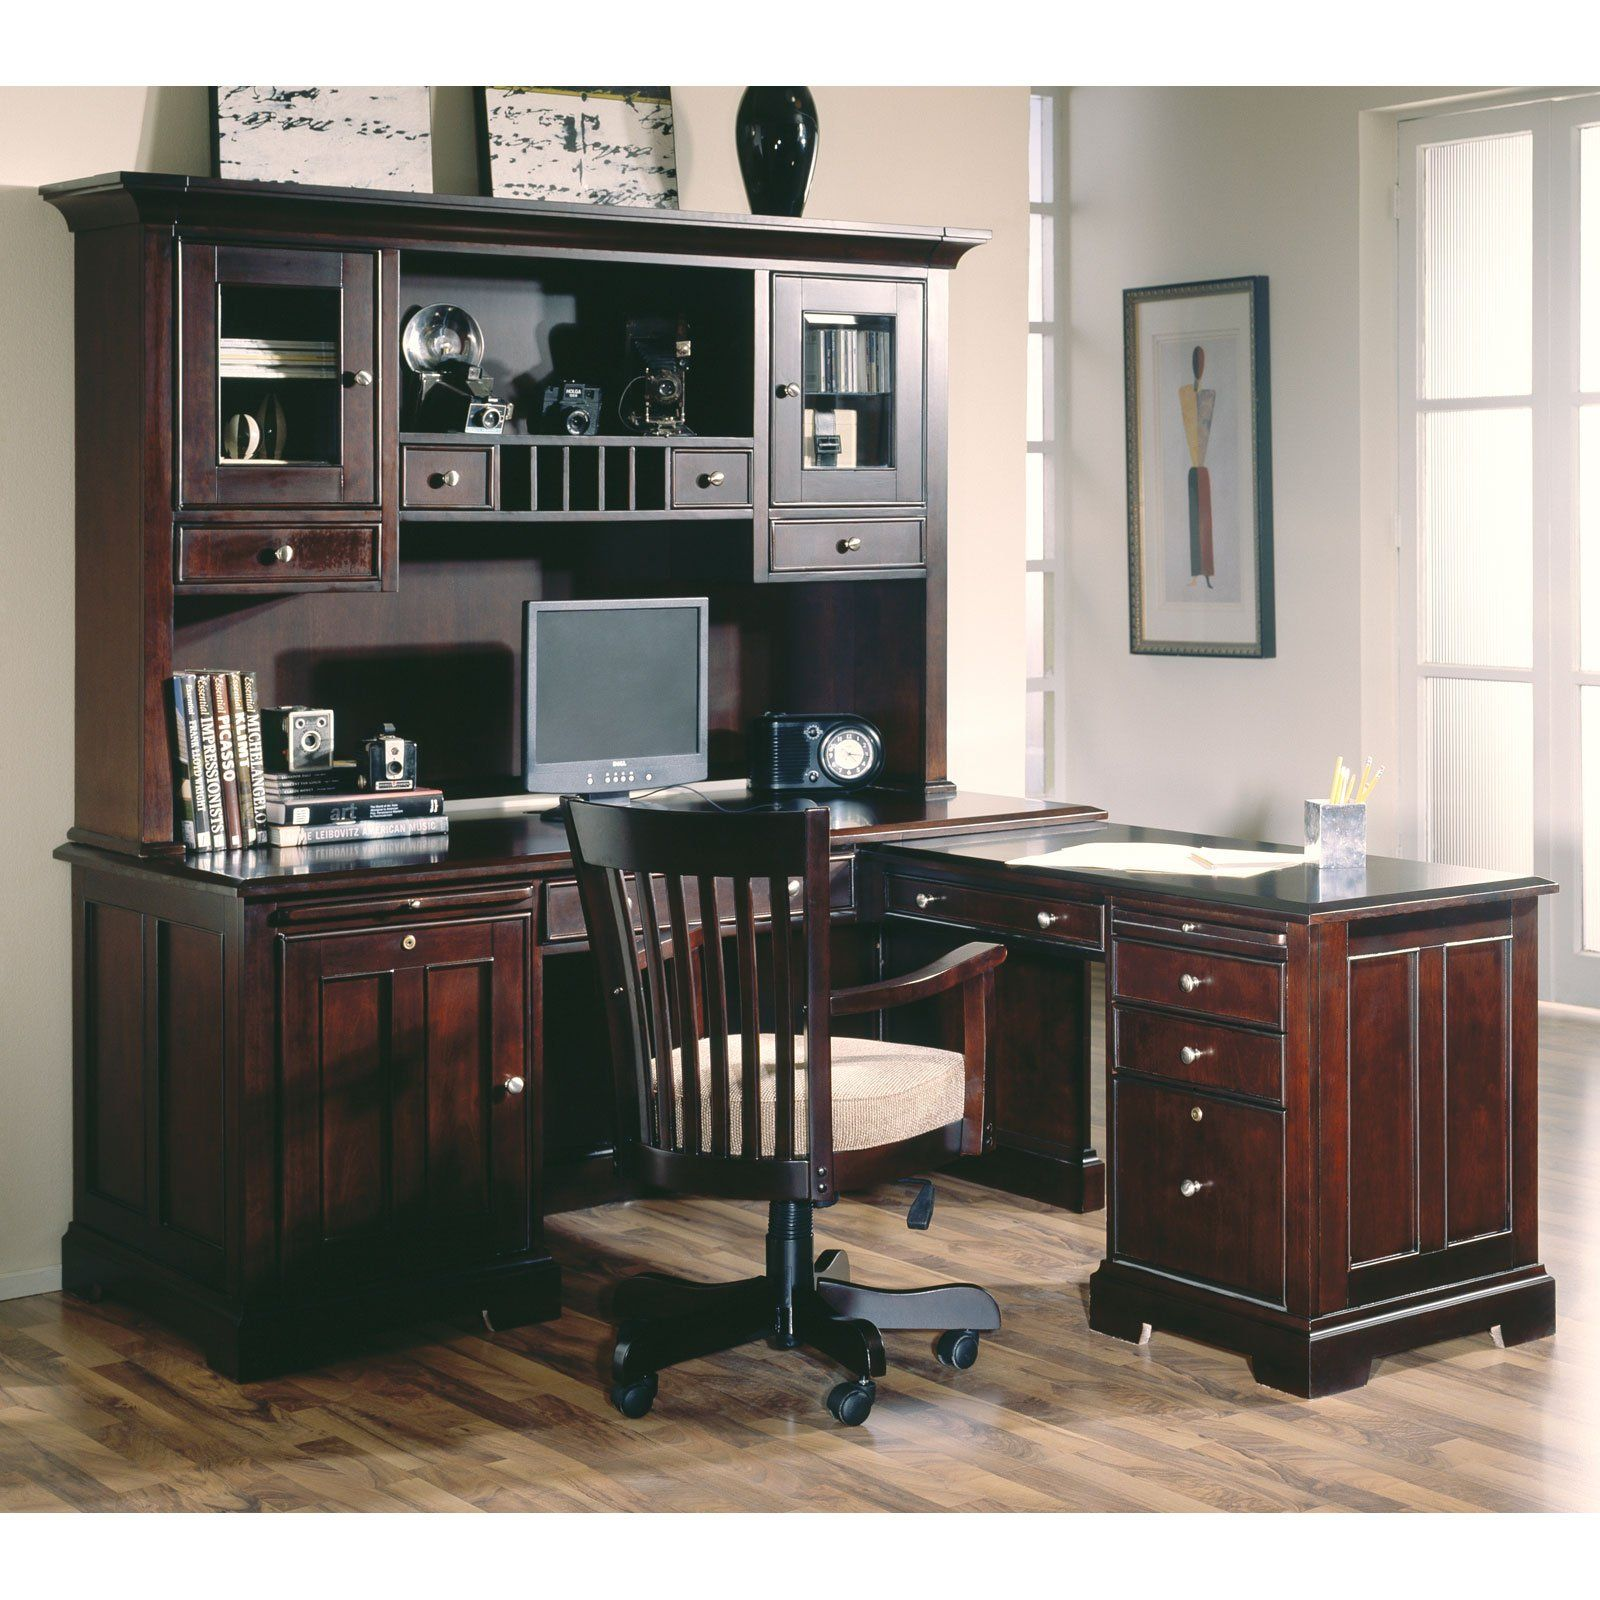 Have to have it Riverside Urban Crossings LShaped Desk with